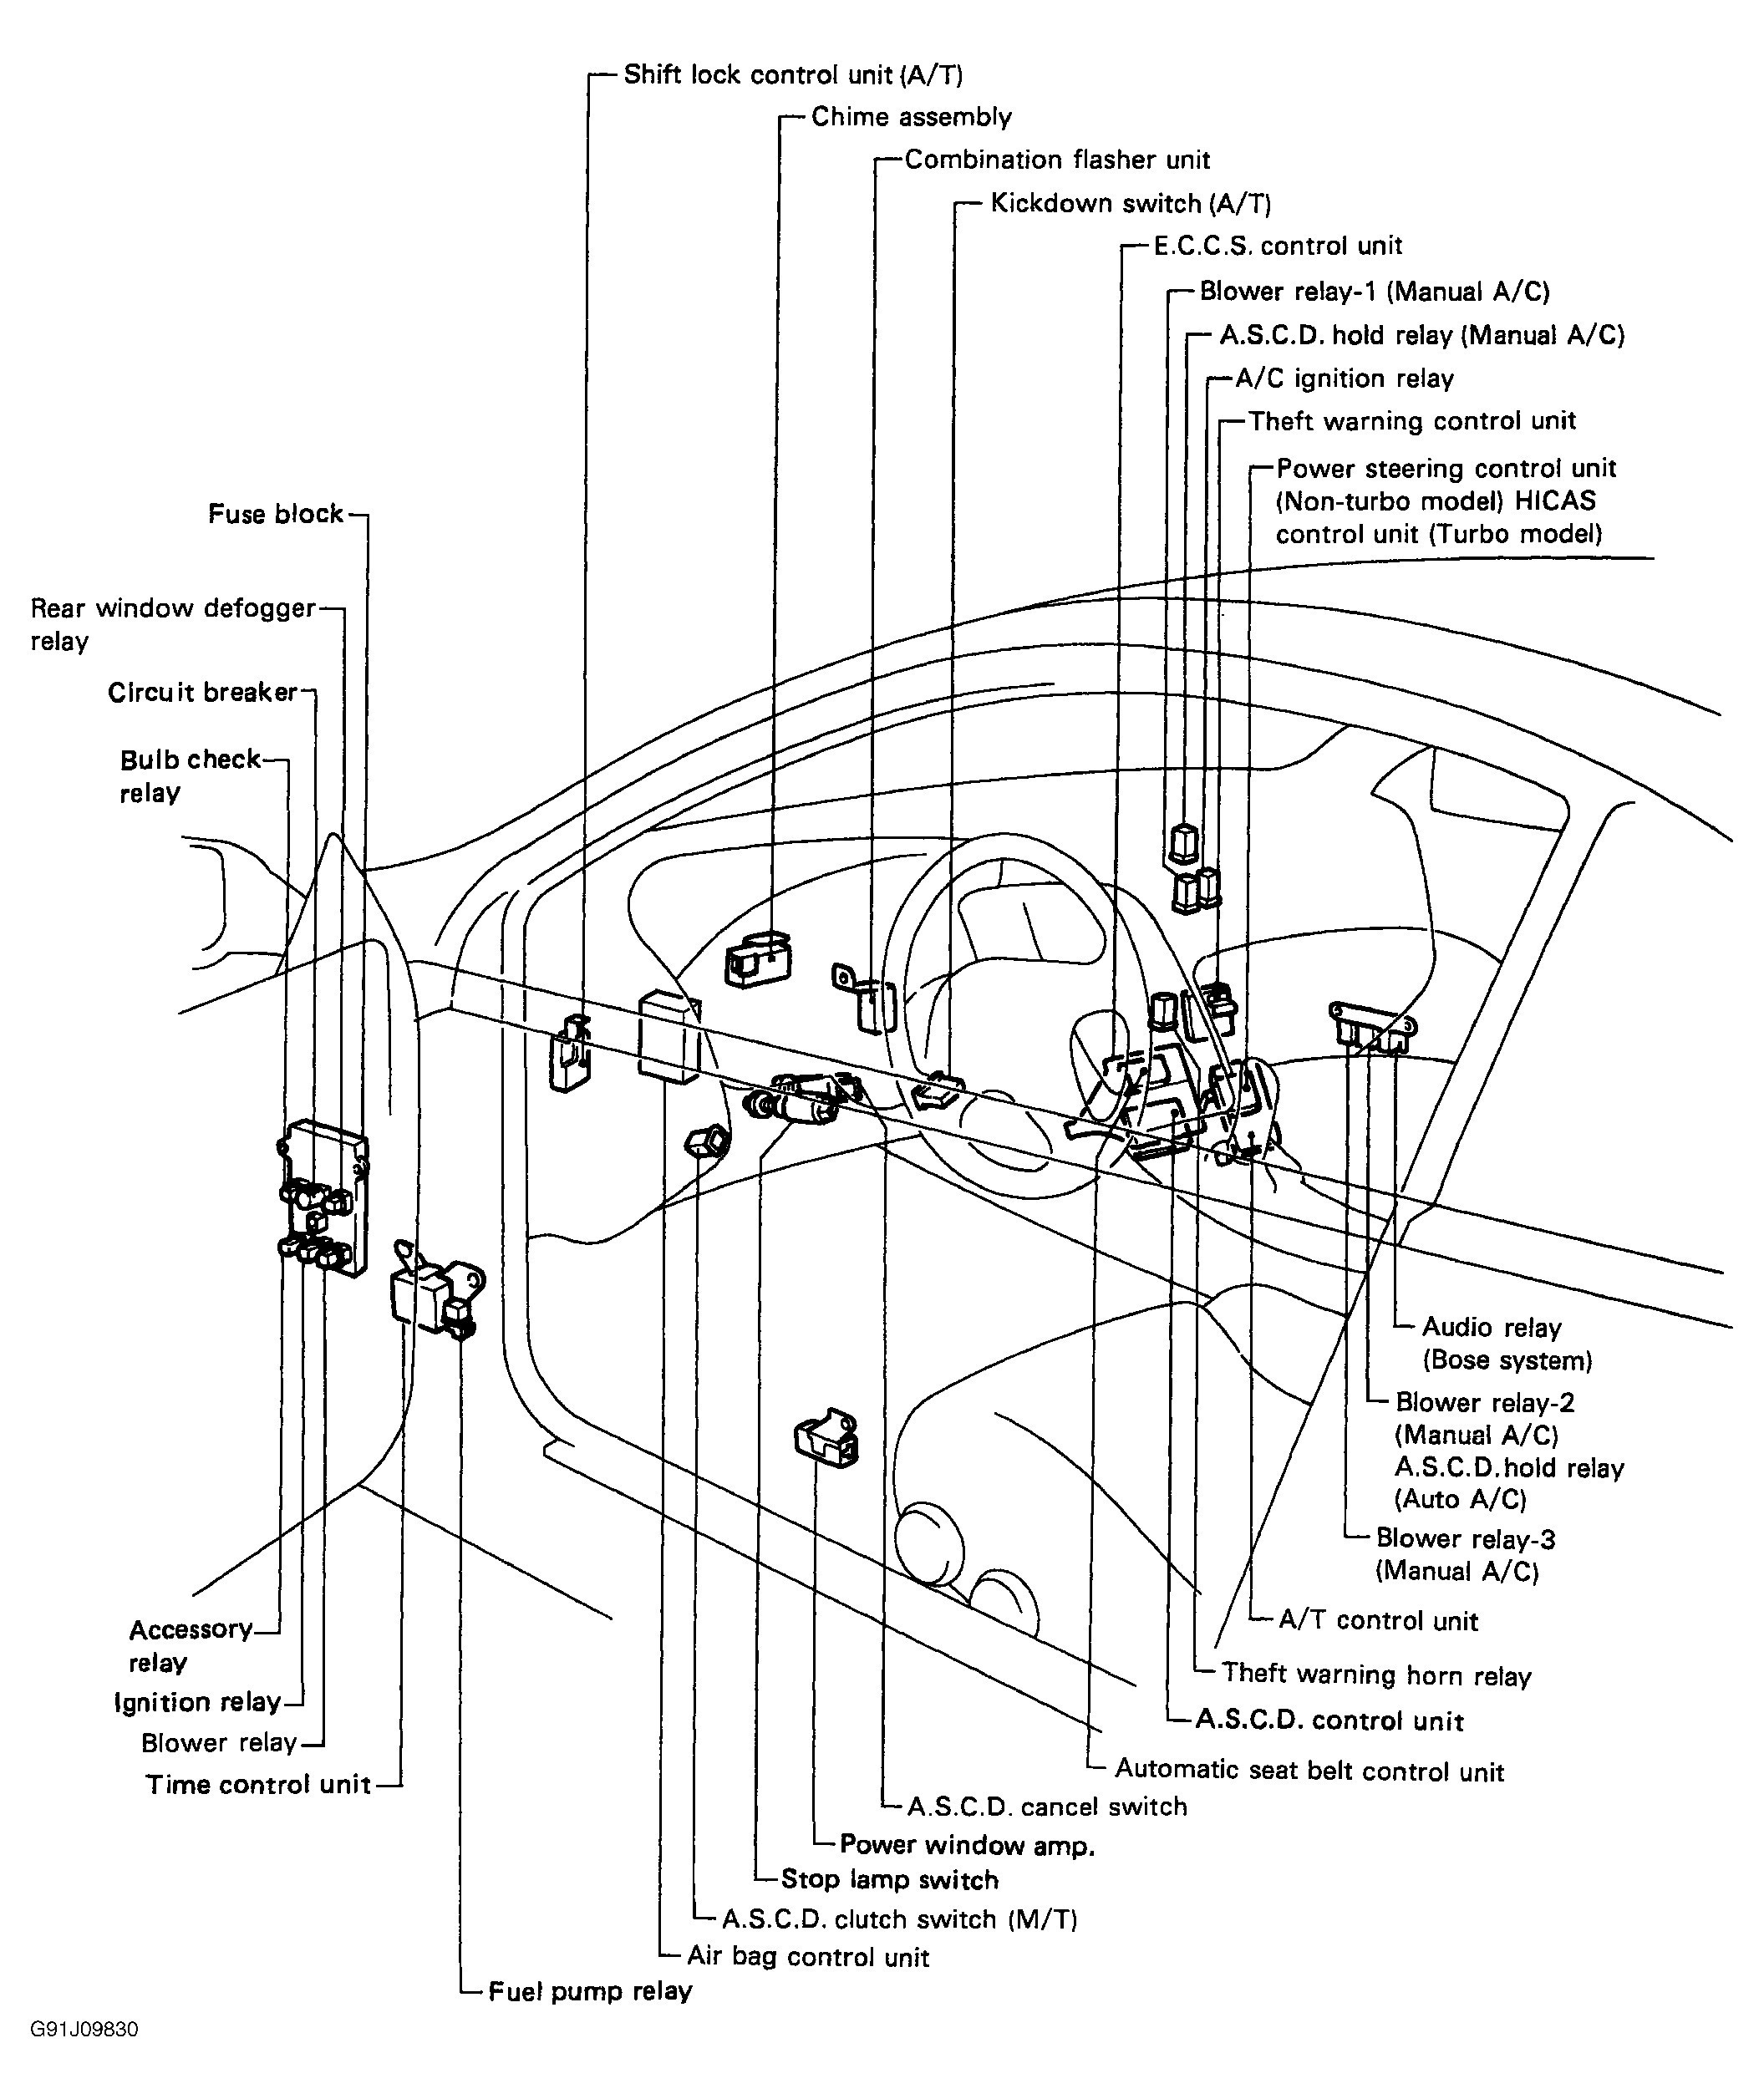 Power Window Wiring Diagram Nissan Maxima Power Window Wiring Diagram